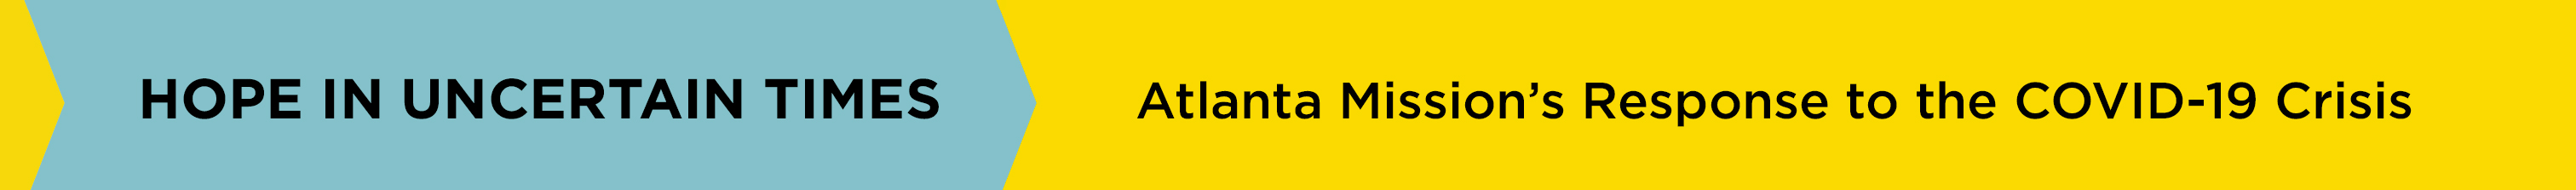 Hope in Uncertain Times: Atlanta Mission's Response to the COVID-19 Crisis